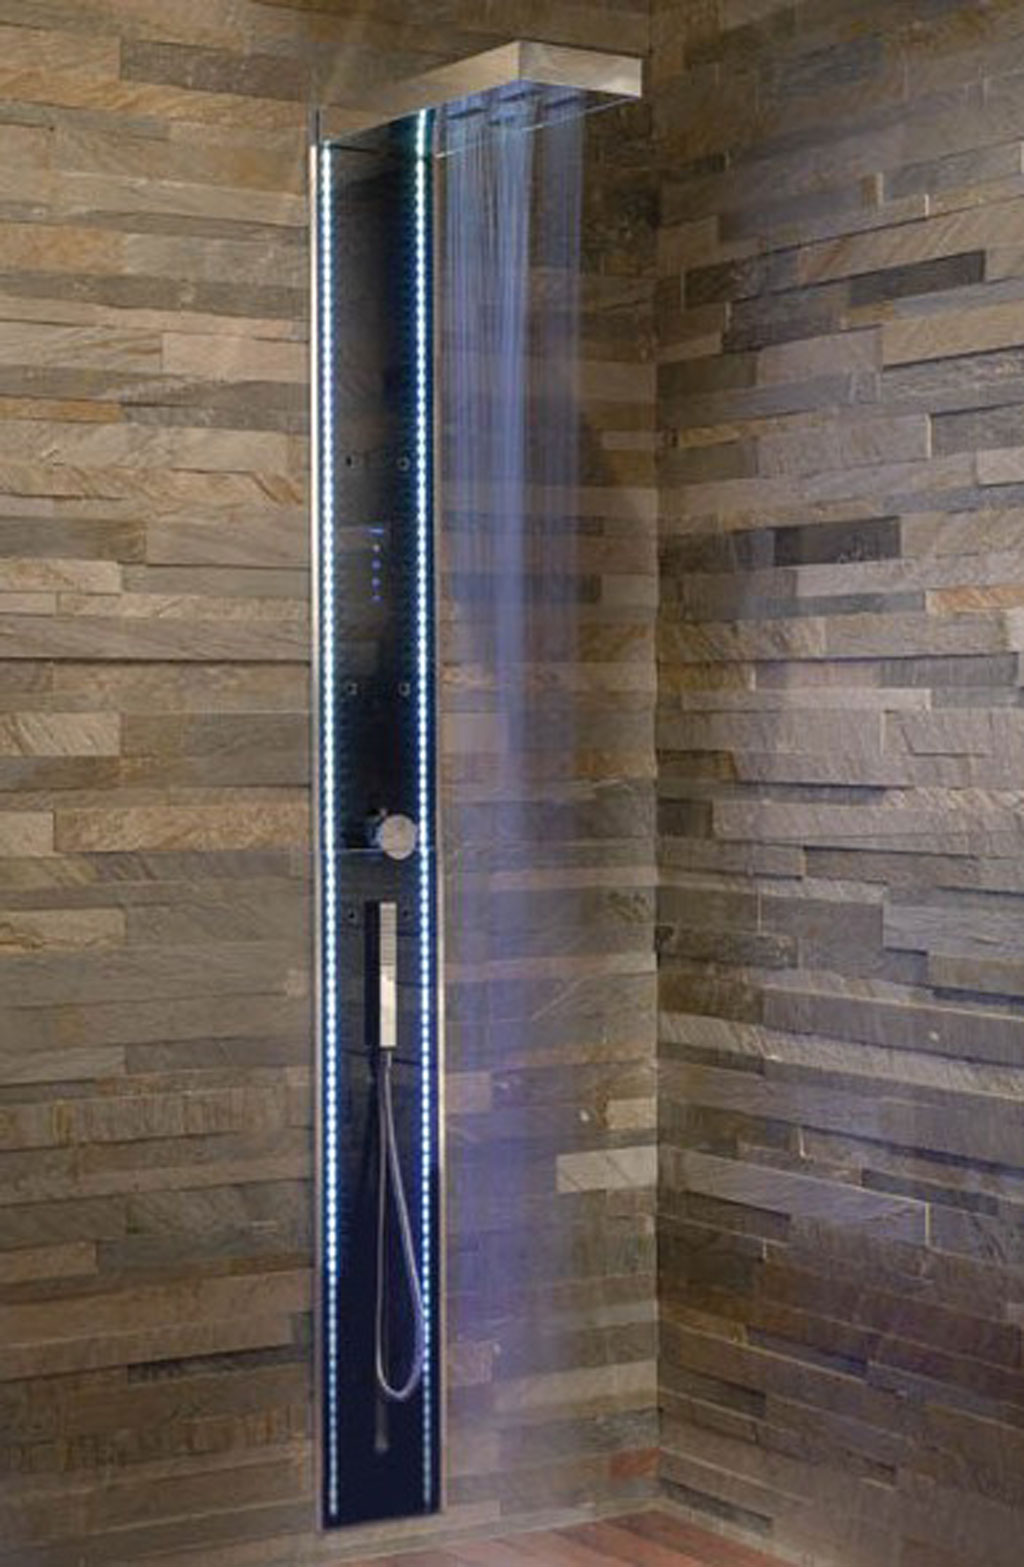 Tile Patterns For Shower